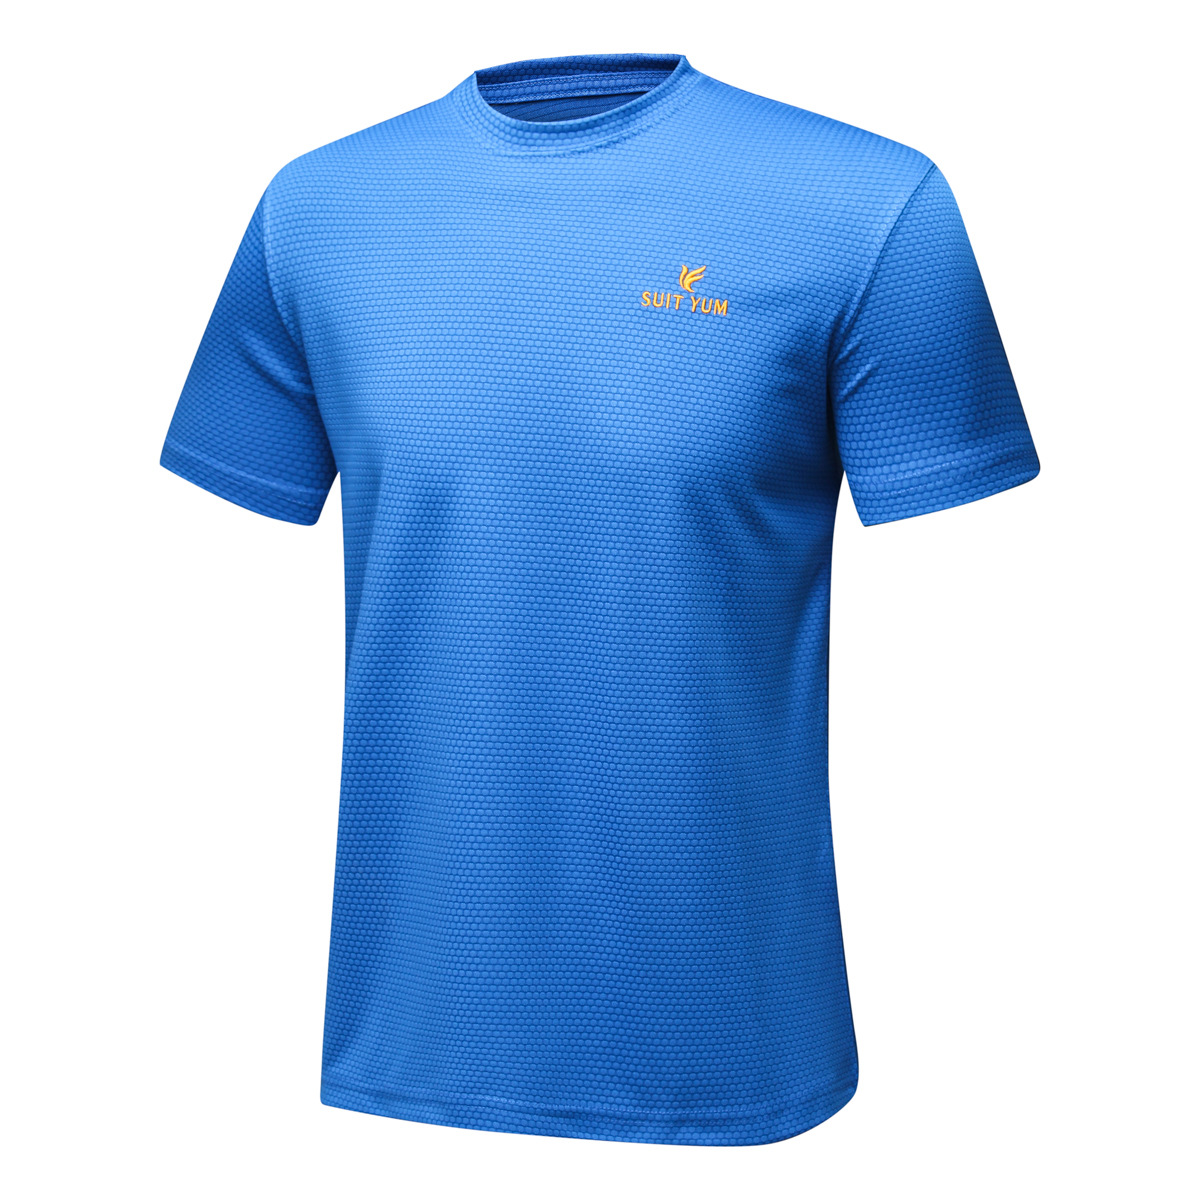 2021 new polyester short sleeve T-shirt quick drying casual sports bottom shirt mens breathable summer and autumn large running top